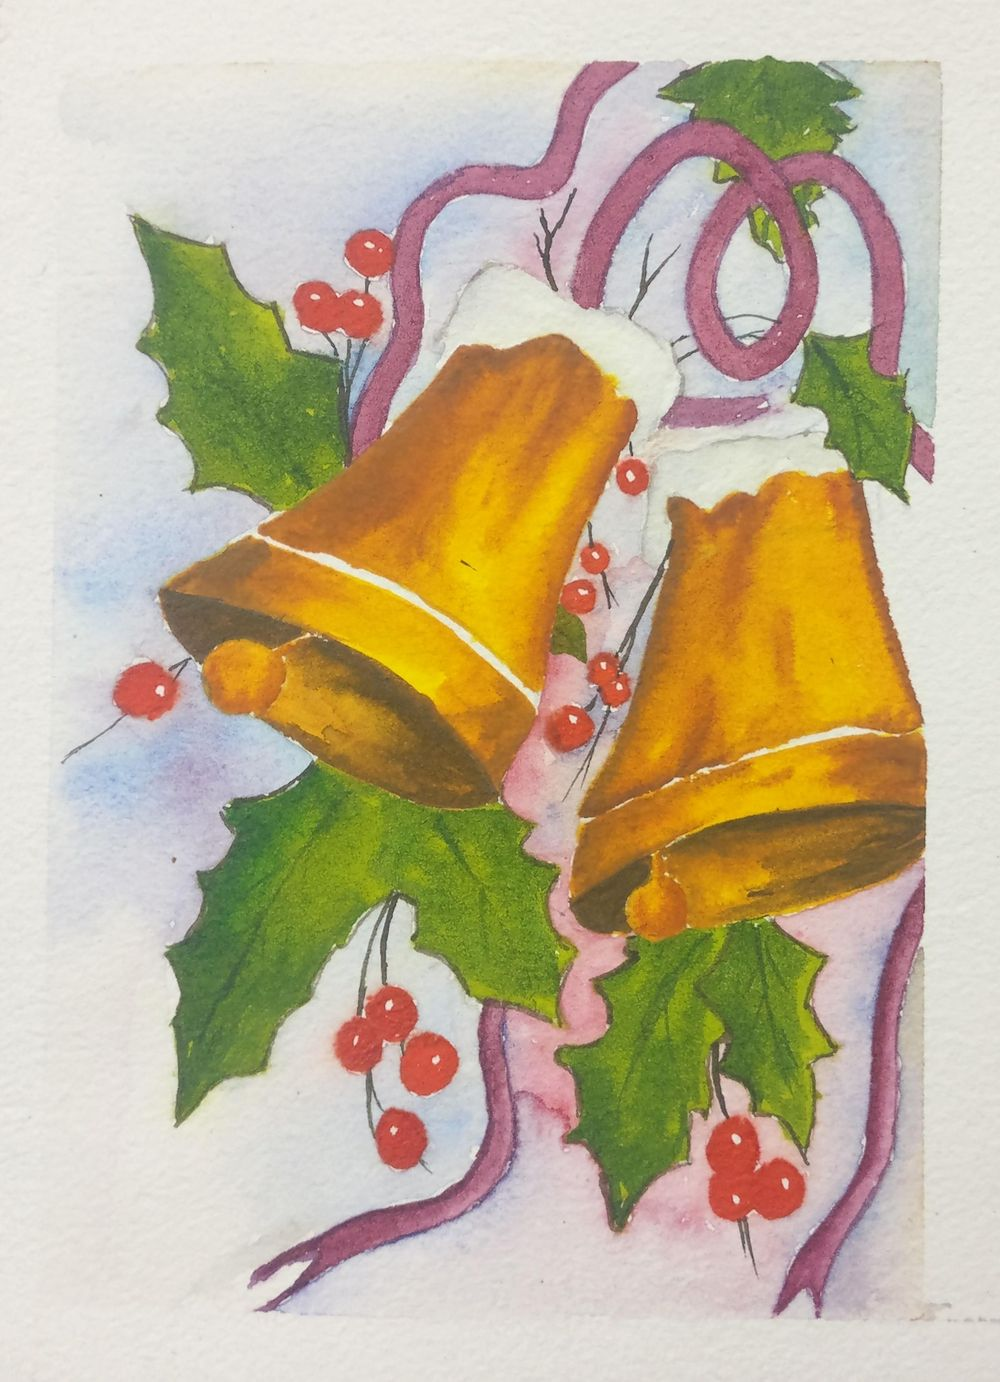 Christmas with watercolors - image 17 - student project